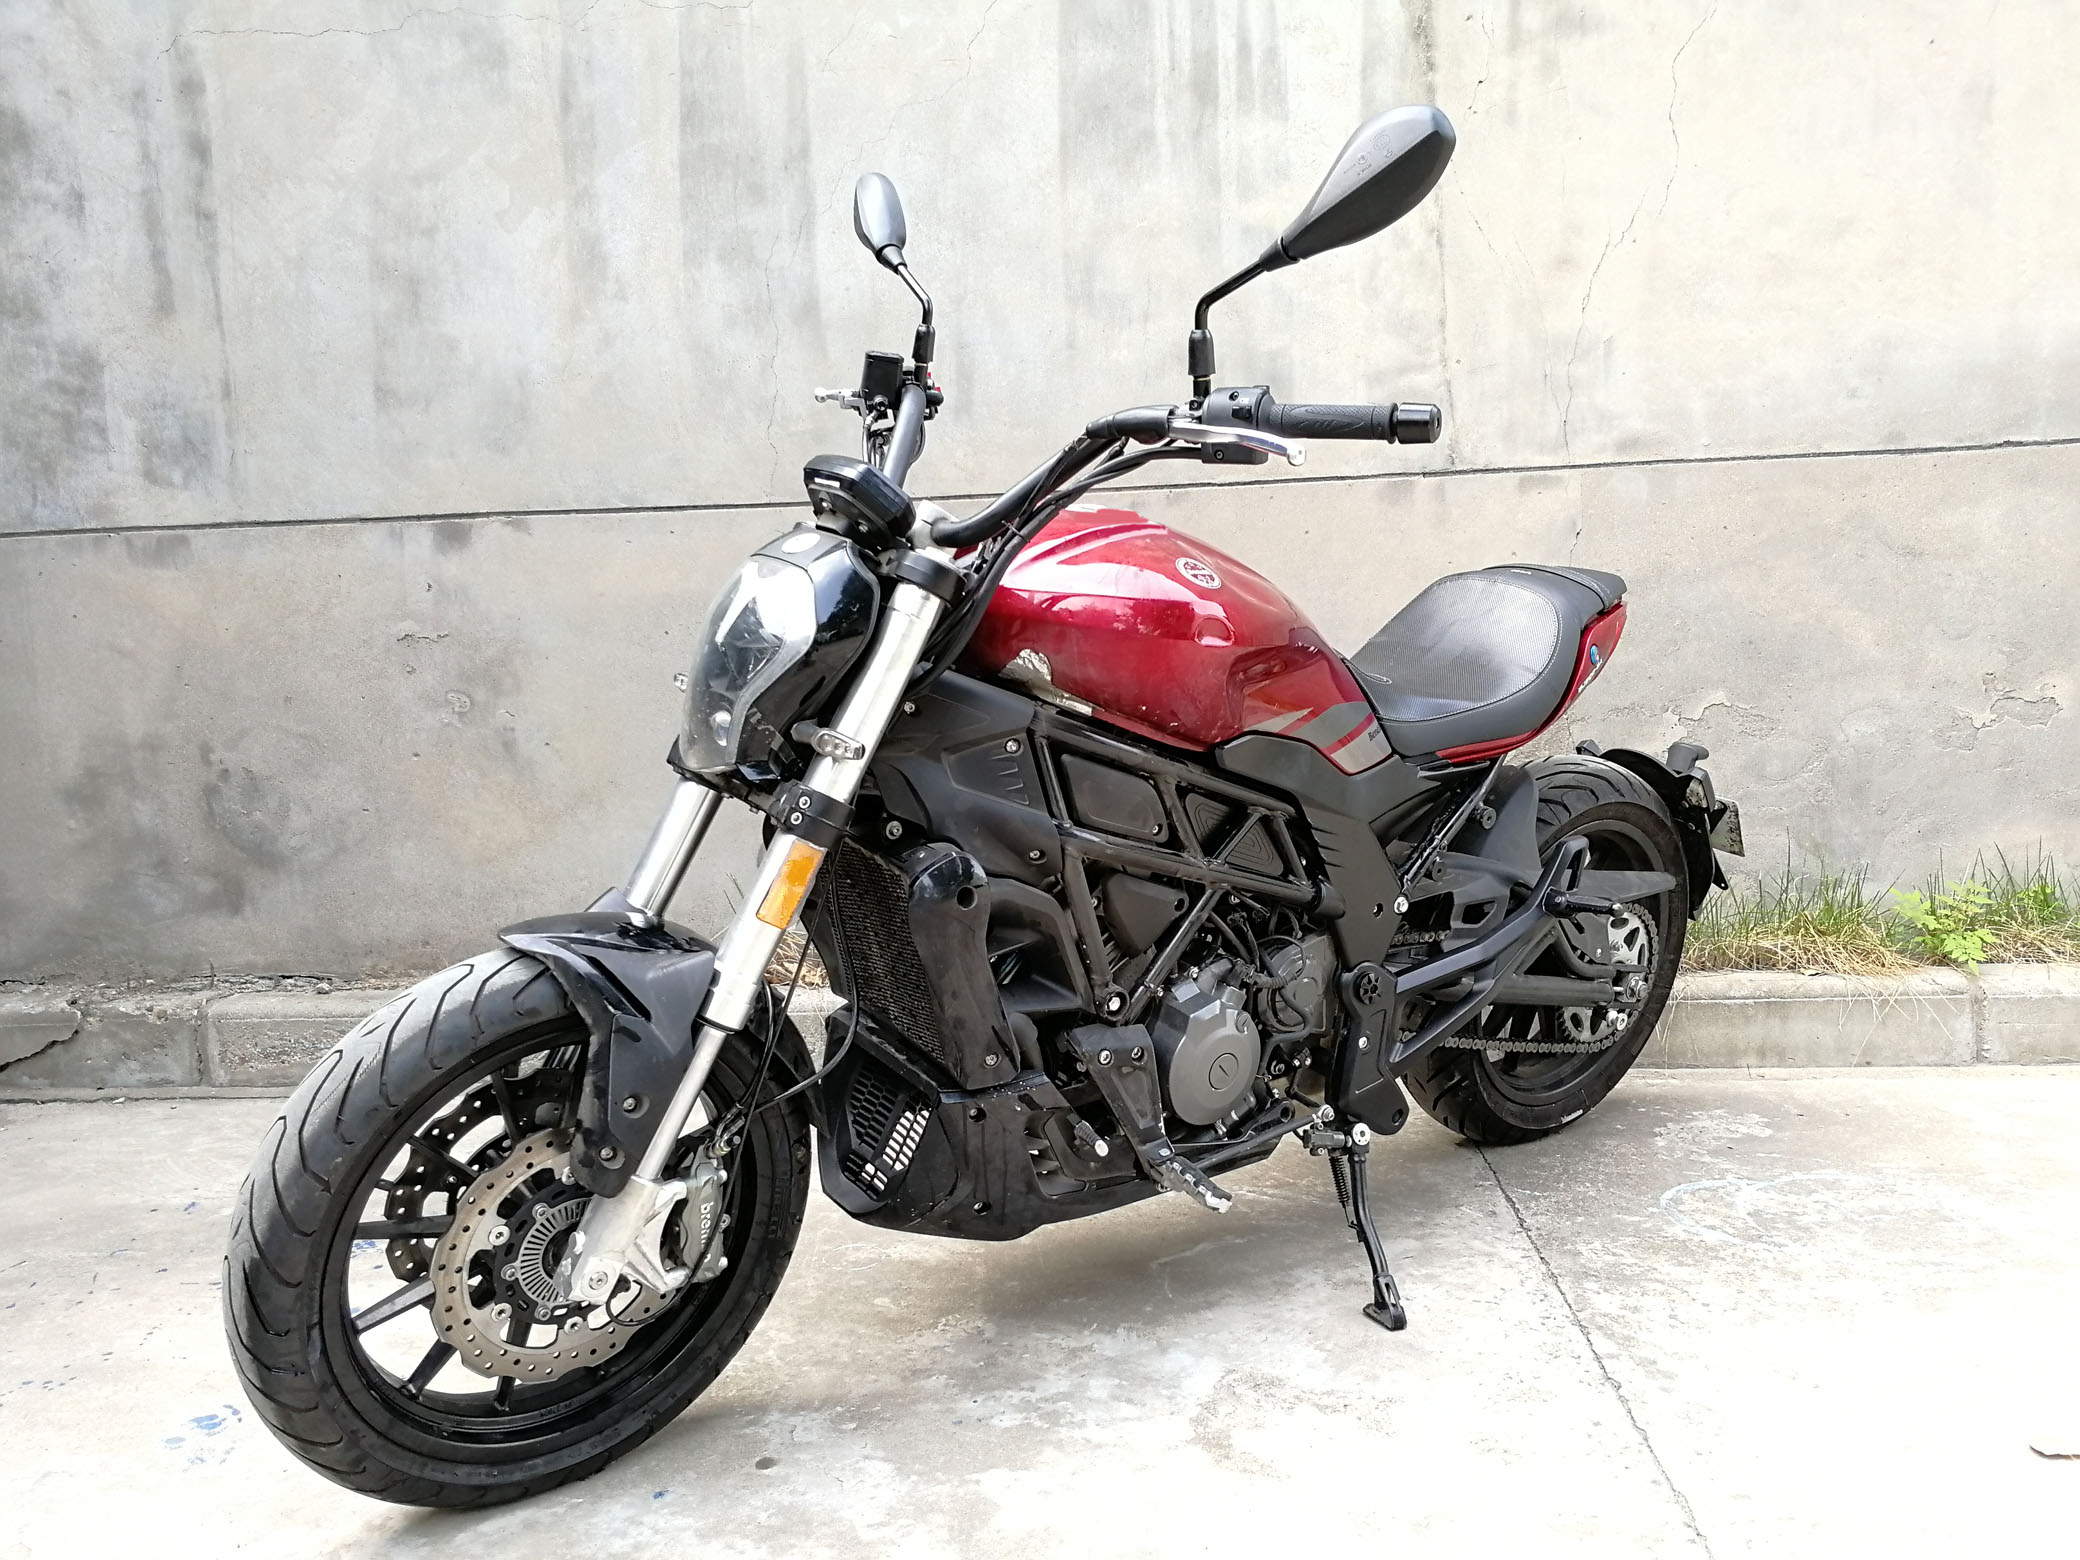 New Benelli 502S it's just like a mini-Diavel